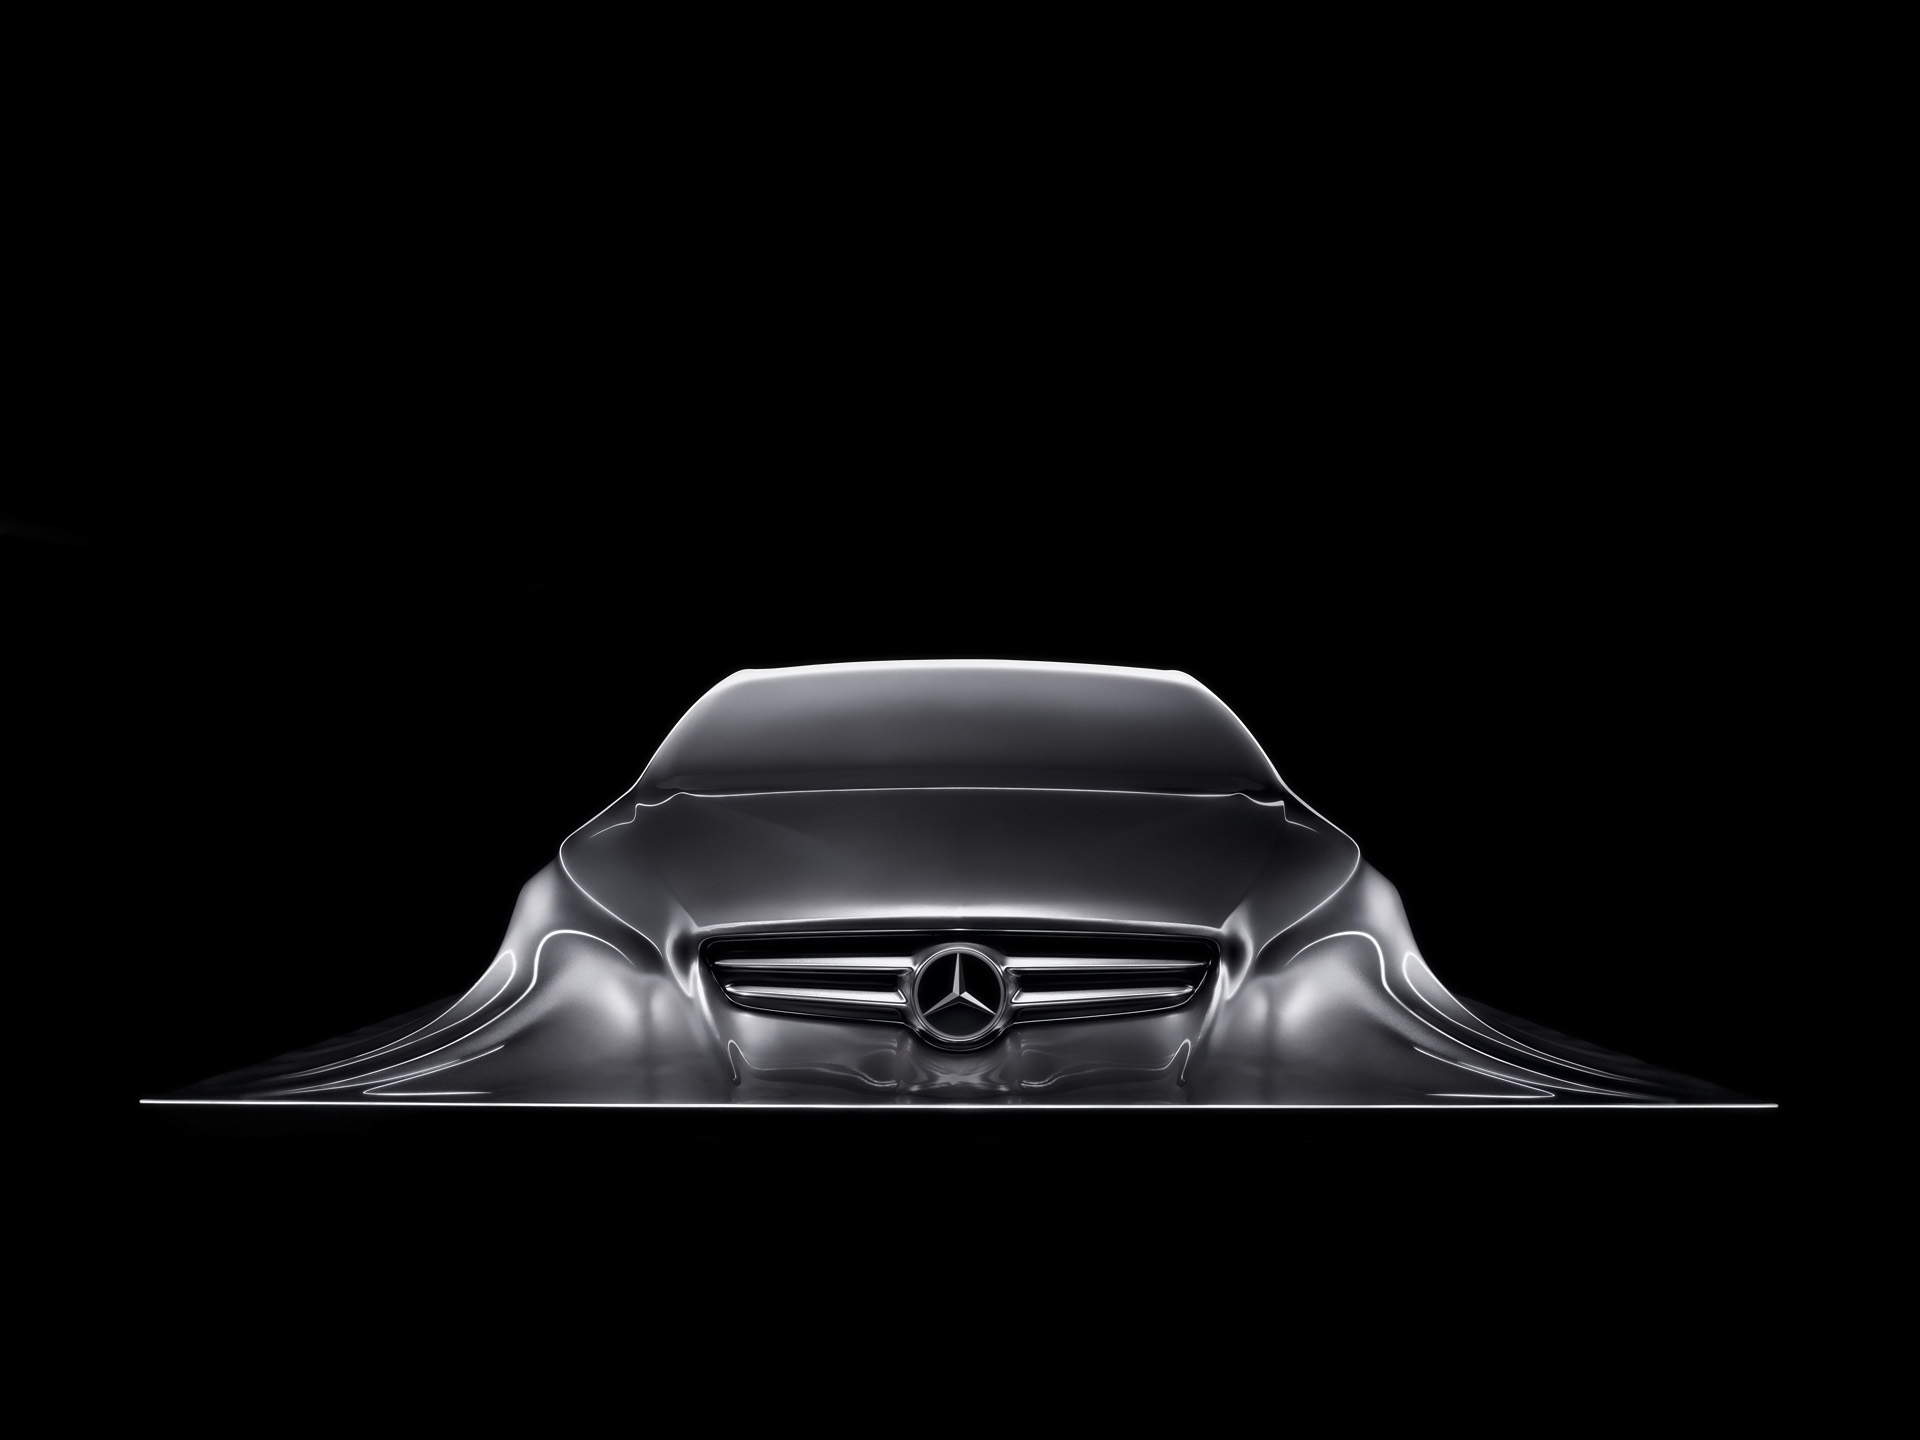 Wallpaper Mercedes Benz Wallpapersafari